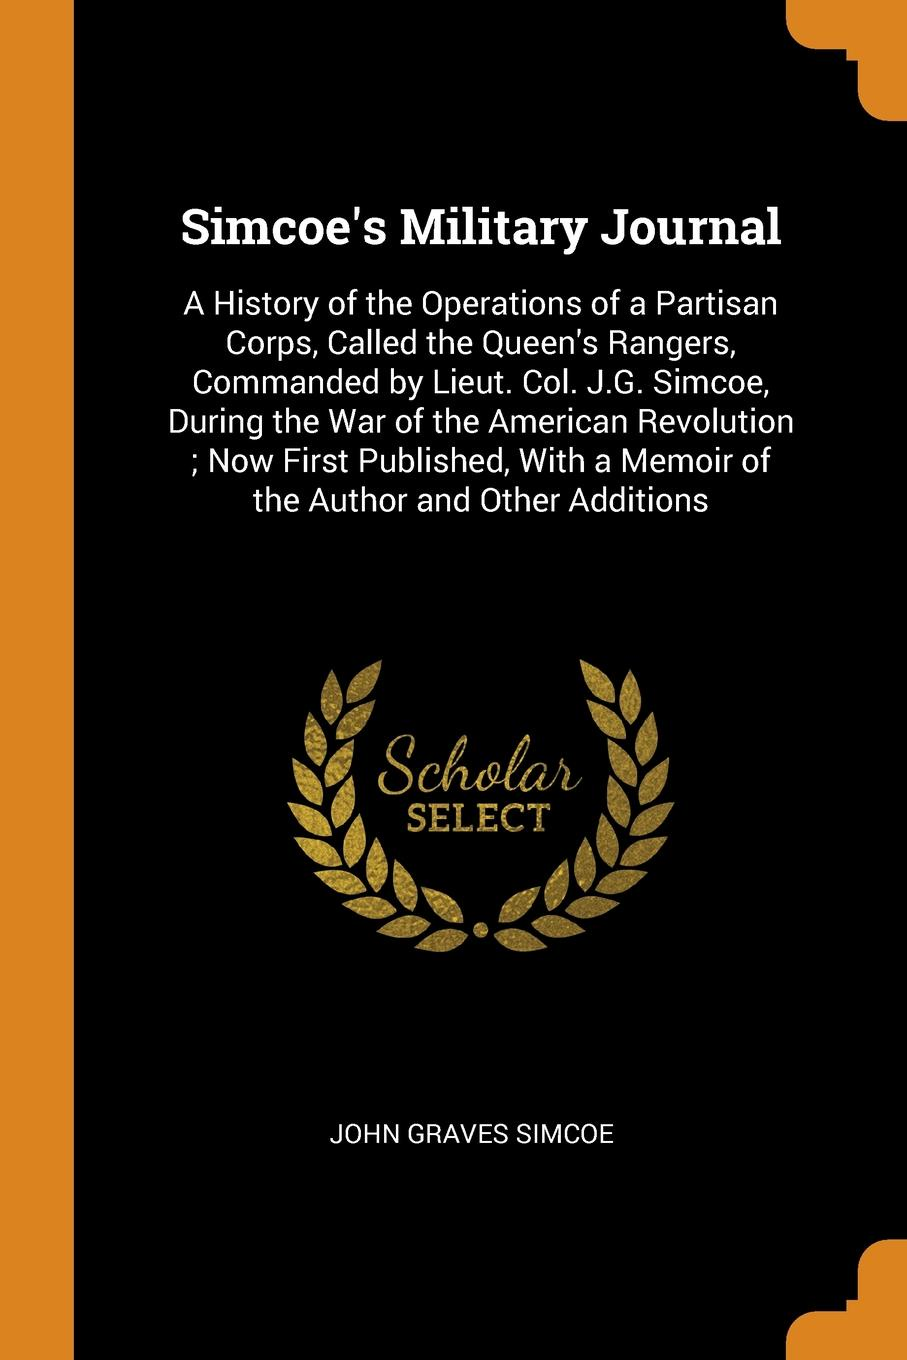 купить John Graves Simcoe Simcoe's Military Journal. A History of the Operations of a Partisan Corps, Called the Queen's Rangers, Commanded by Lieut. Col. J.G. Simcoe, During the War of the American Revolution ; Now First Published, With a Memoir of the Author and Other Ad... дешево